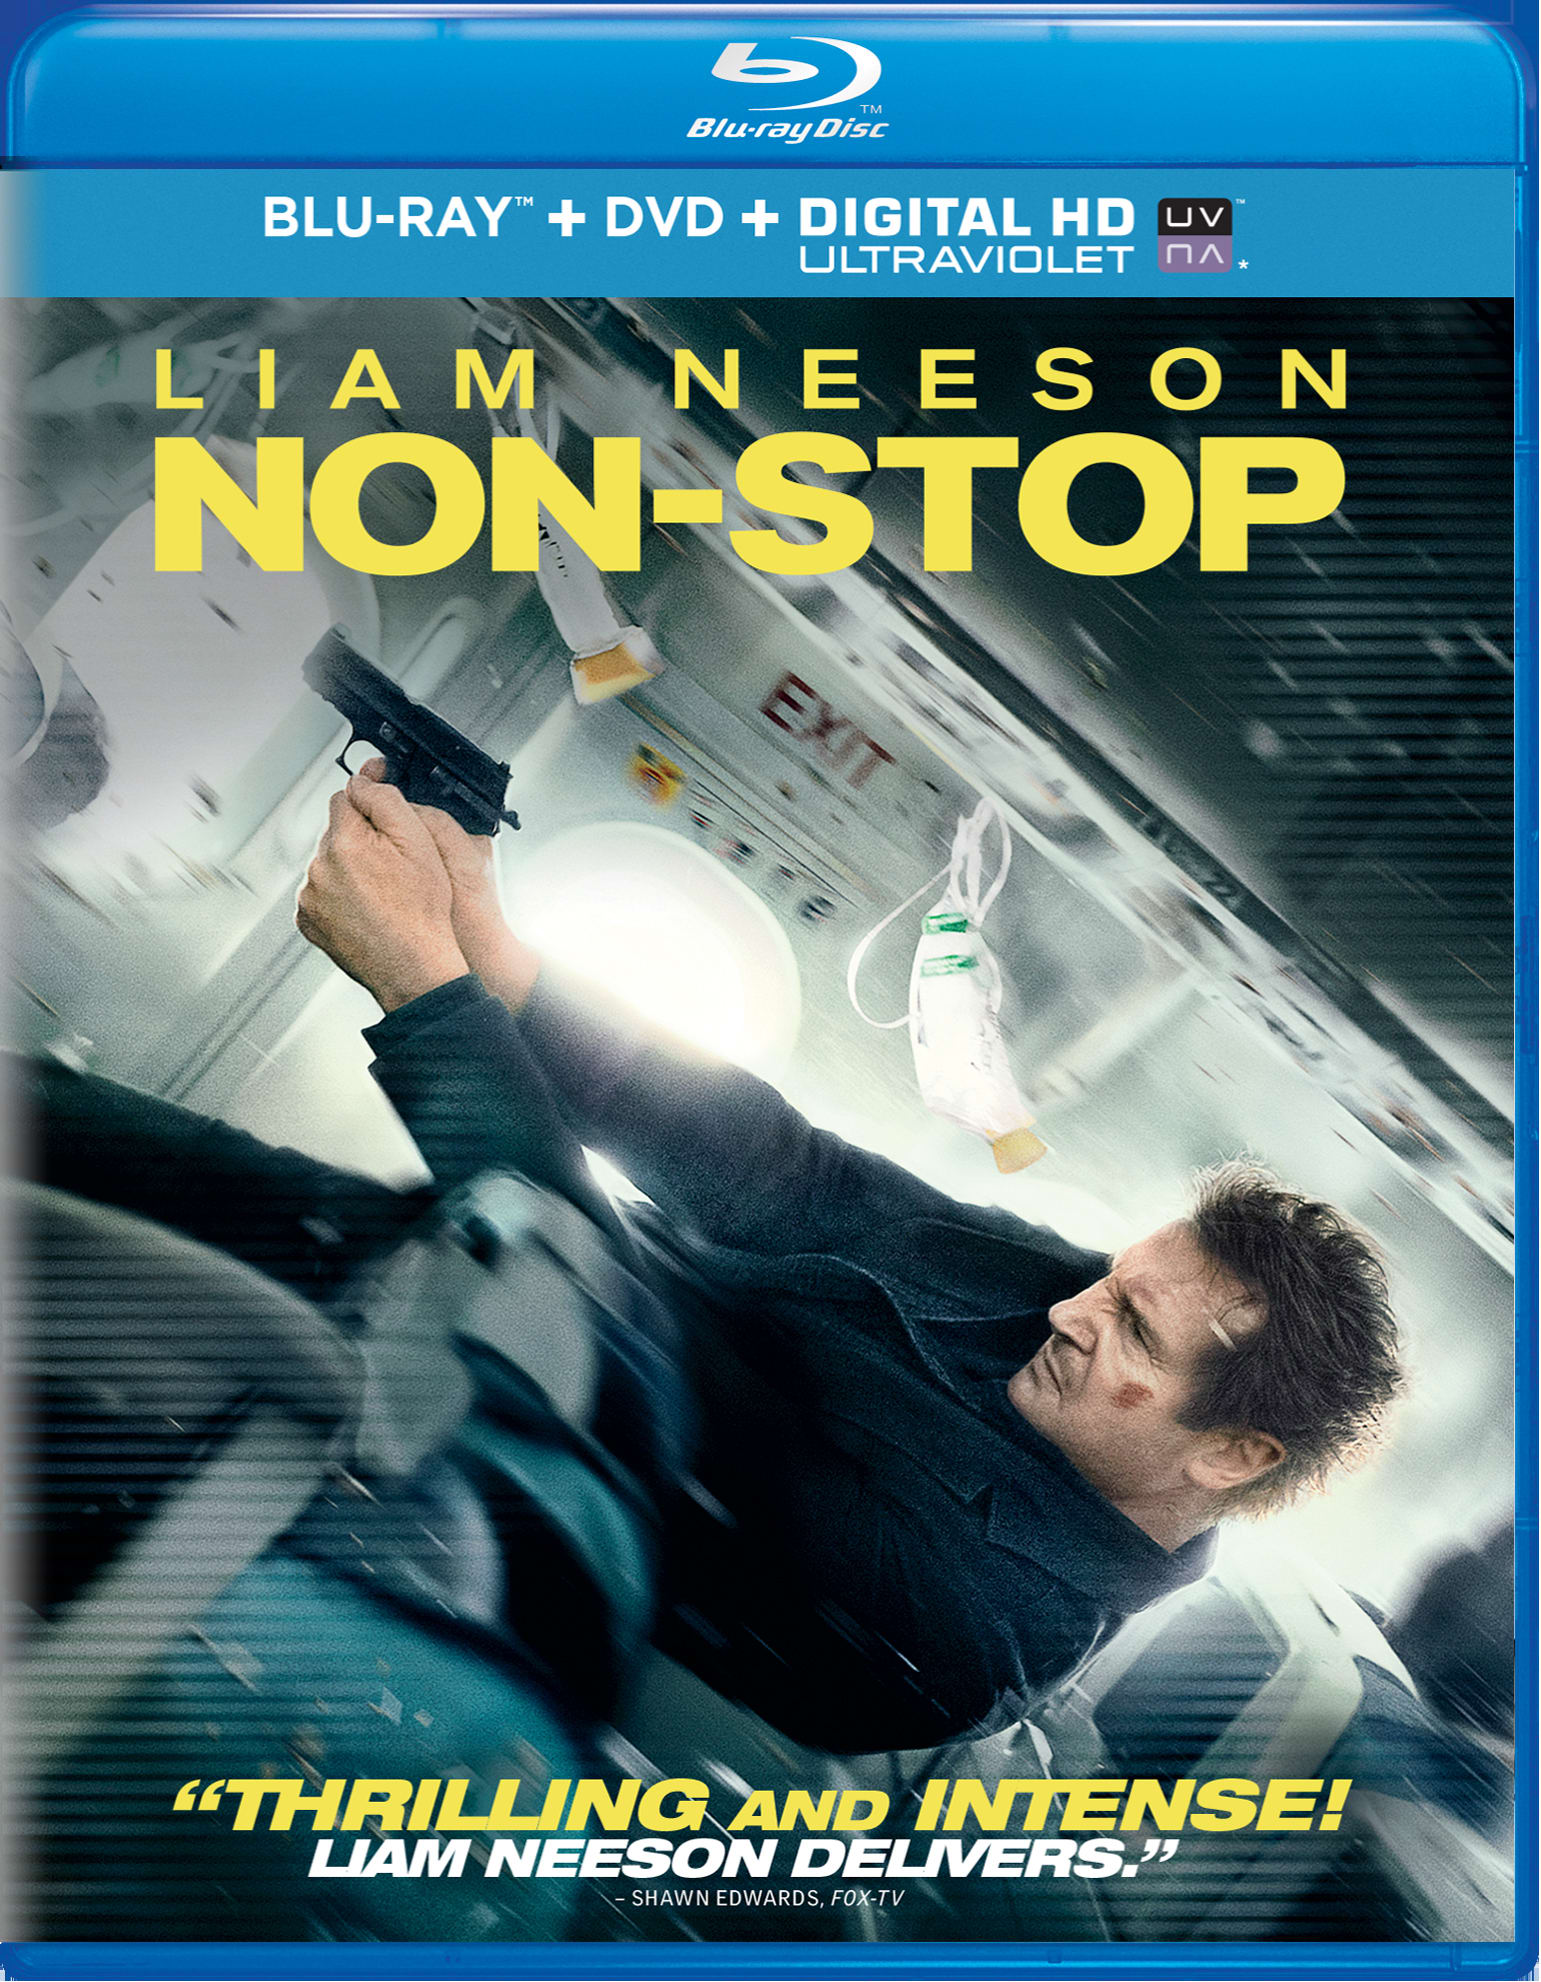 Non-Stop (DVD + Digital + Ultraviolet) [Blu-ray]